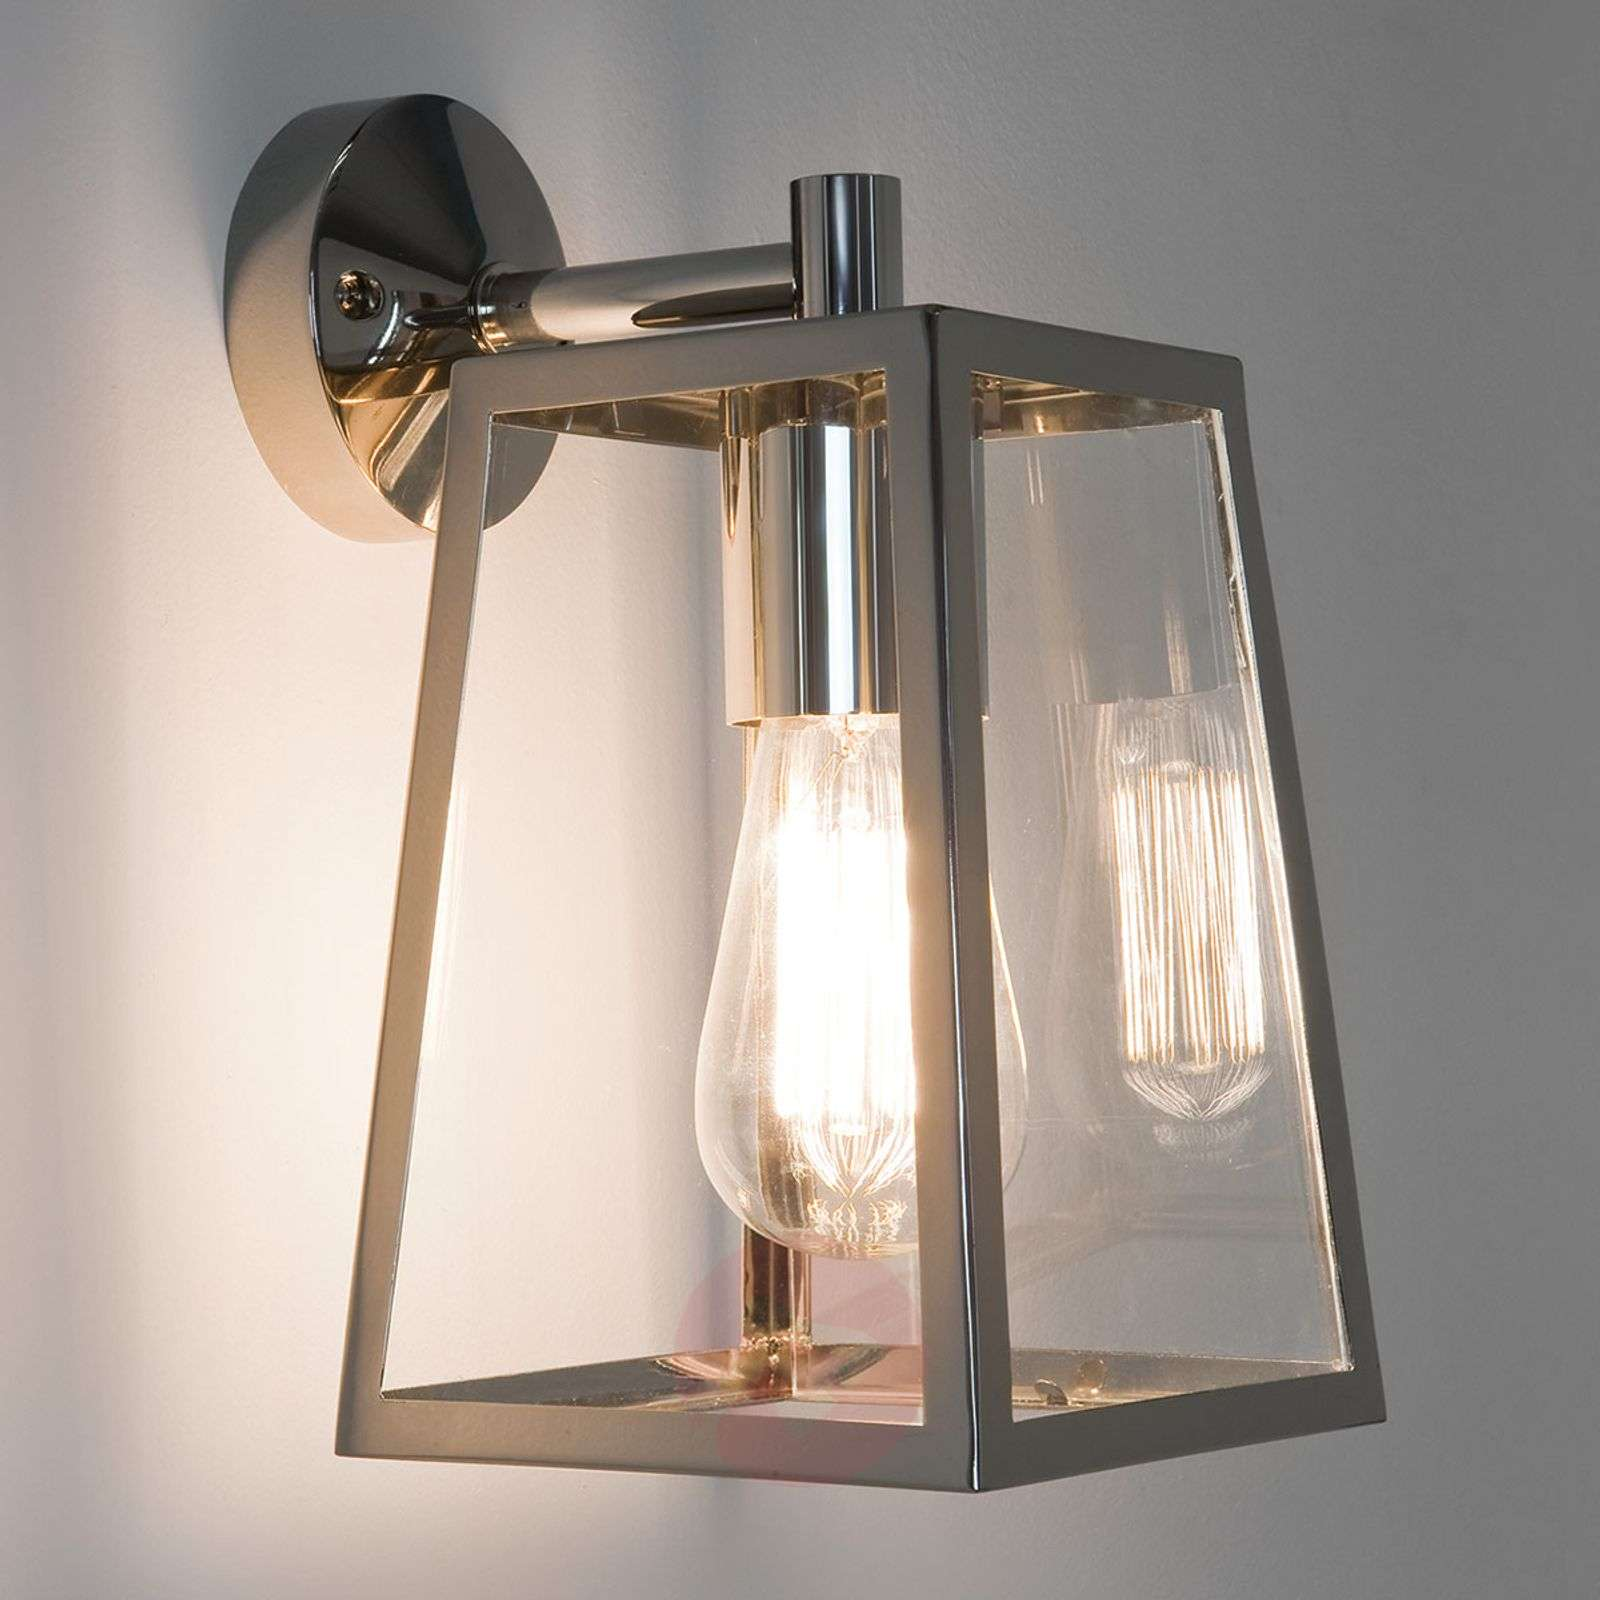 Calvi Outside Wall Light Lantern-Shaped Nickel-1020482-03